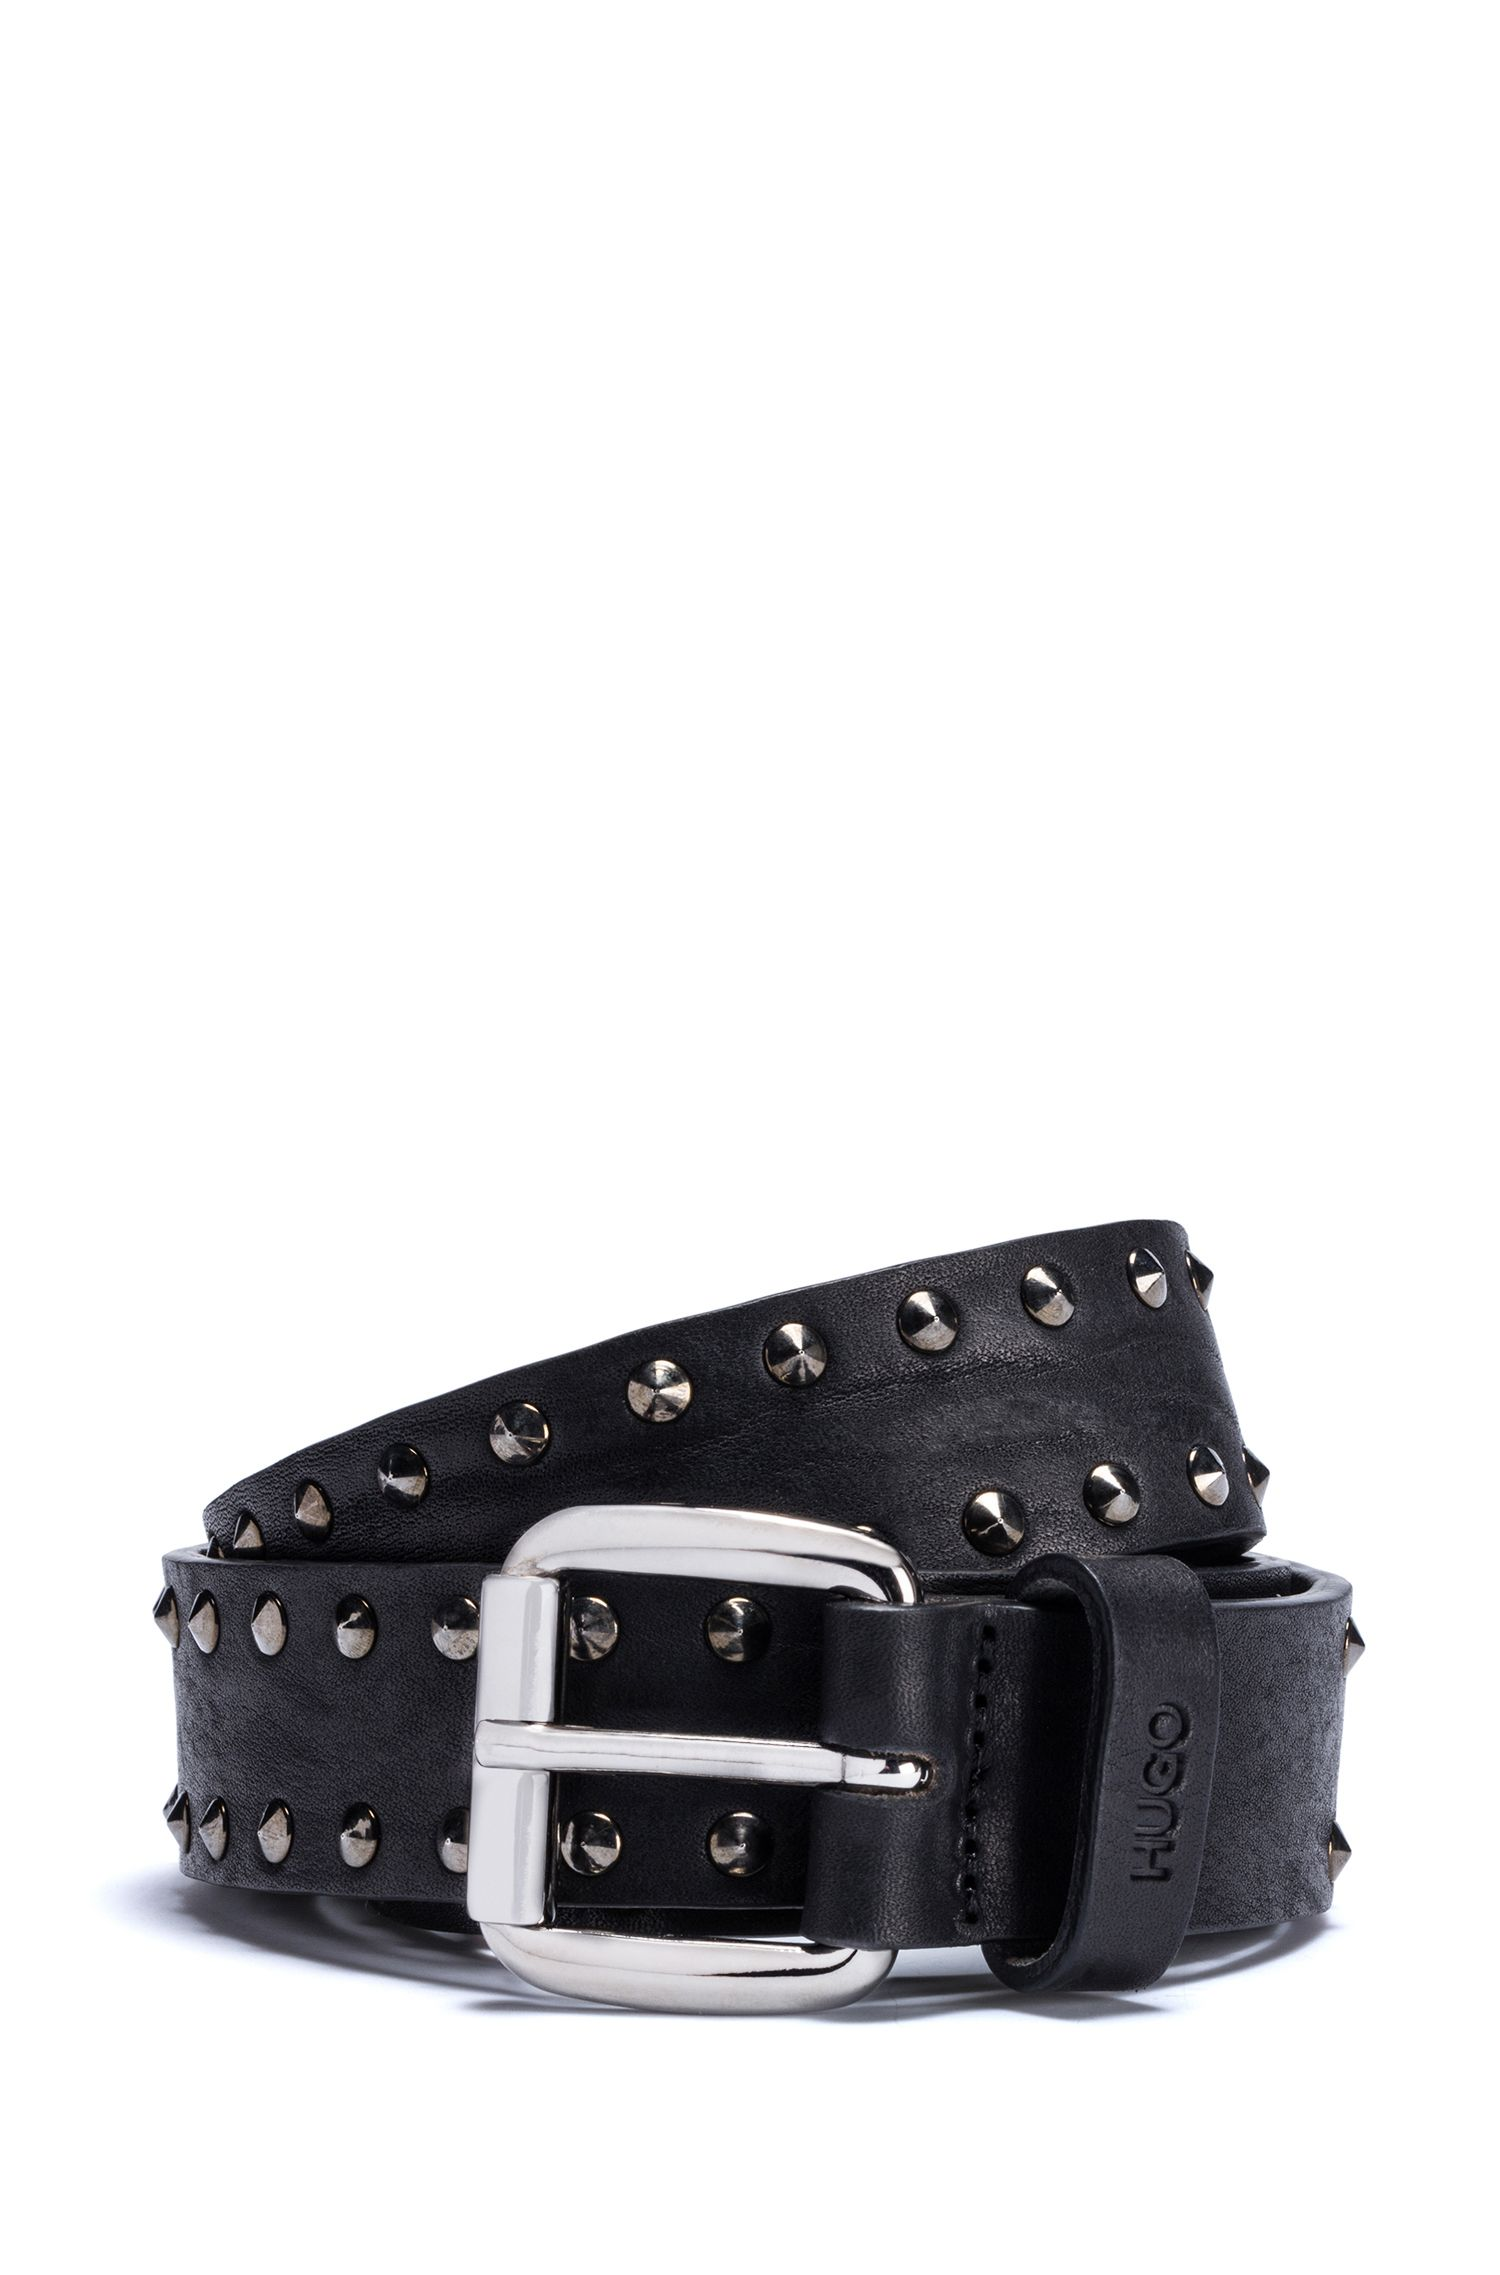 Studded Leather Belt | Giove Sz30